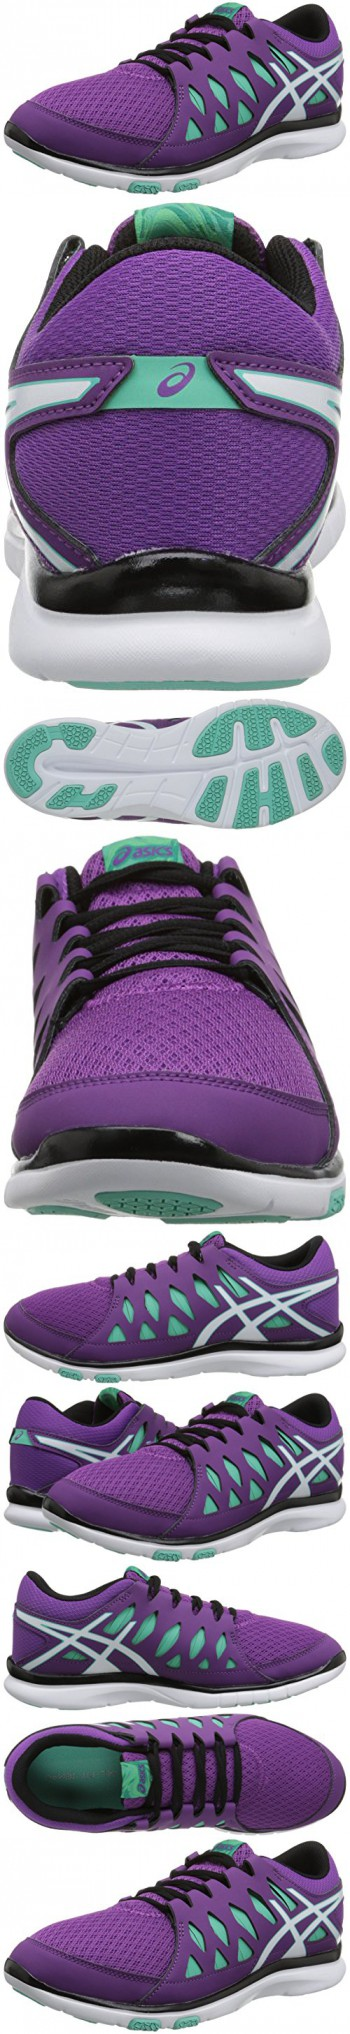 ASICS Women's Gel Fit Tempo 2 Fitness Shoe, Grape/White/Aqua Mint, 7 M US